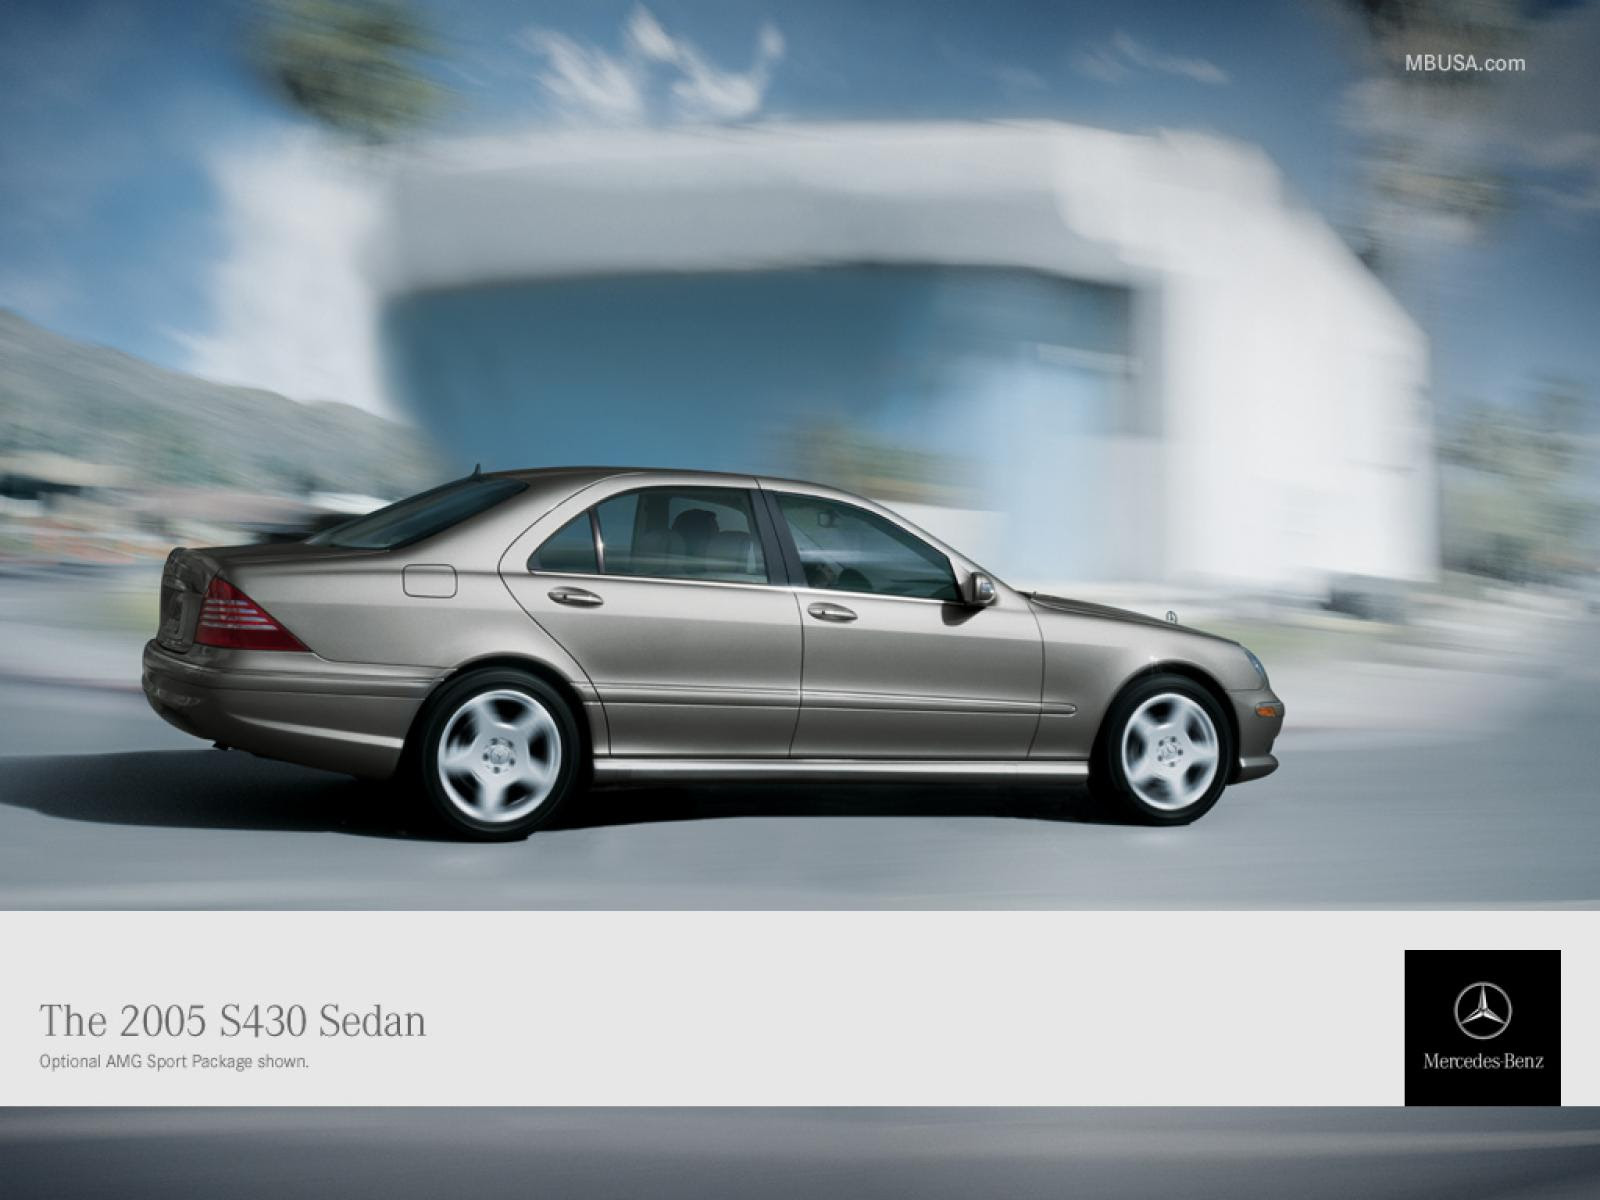 2005 Mercedes-Benz S-Class - Information and photos - Zomb ...